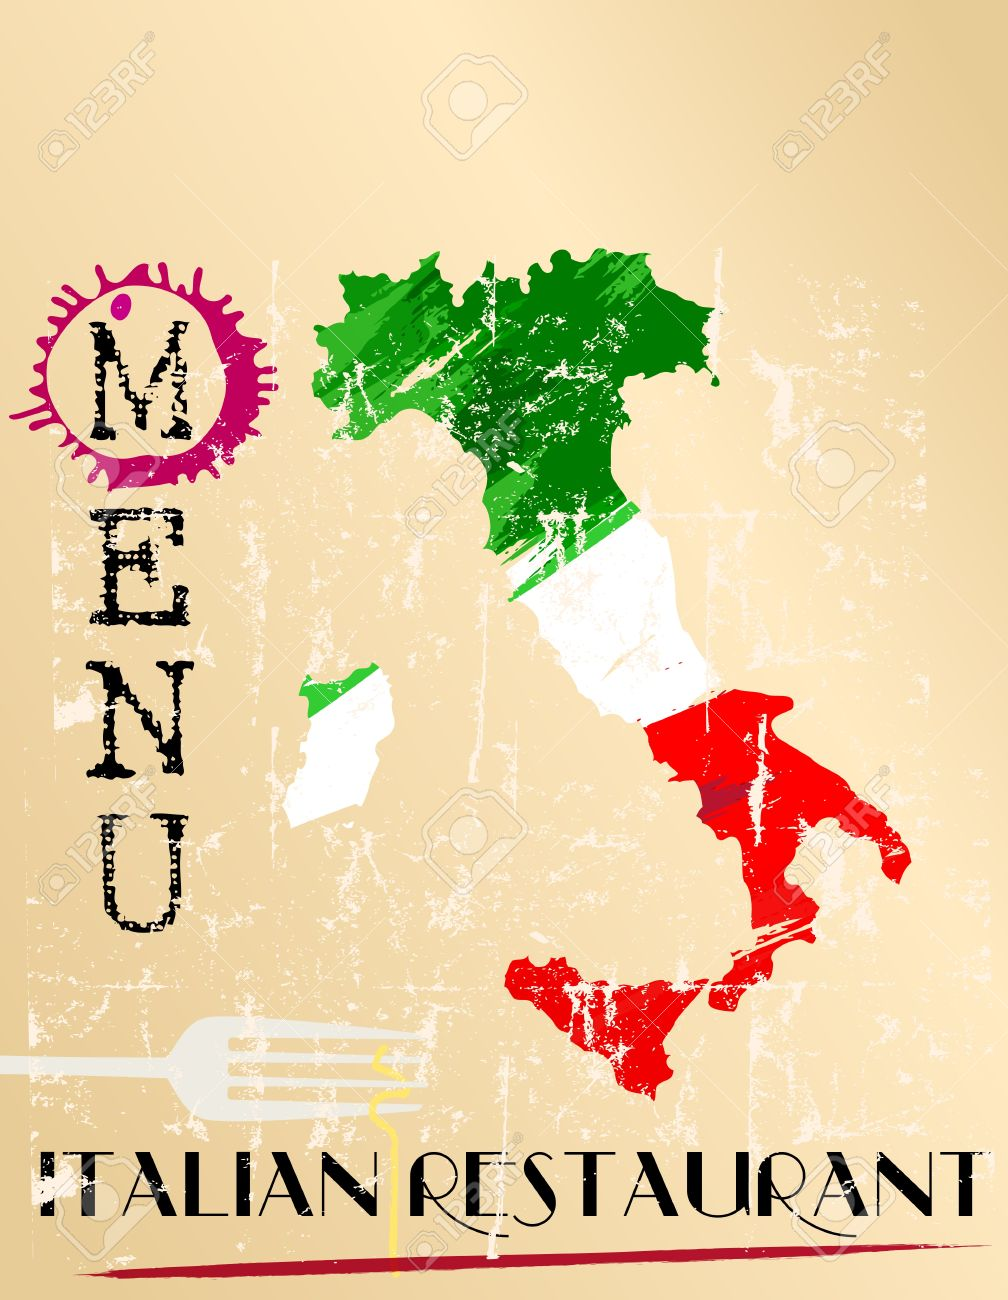 Menu Design For Italian Restaurant Free Space For Your Text Royalty Free Cliparts Vectors And Stock Illustration Image 21138147